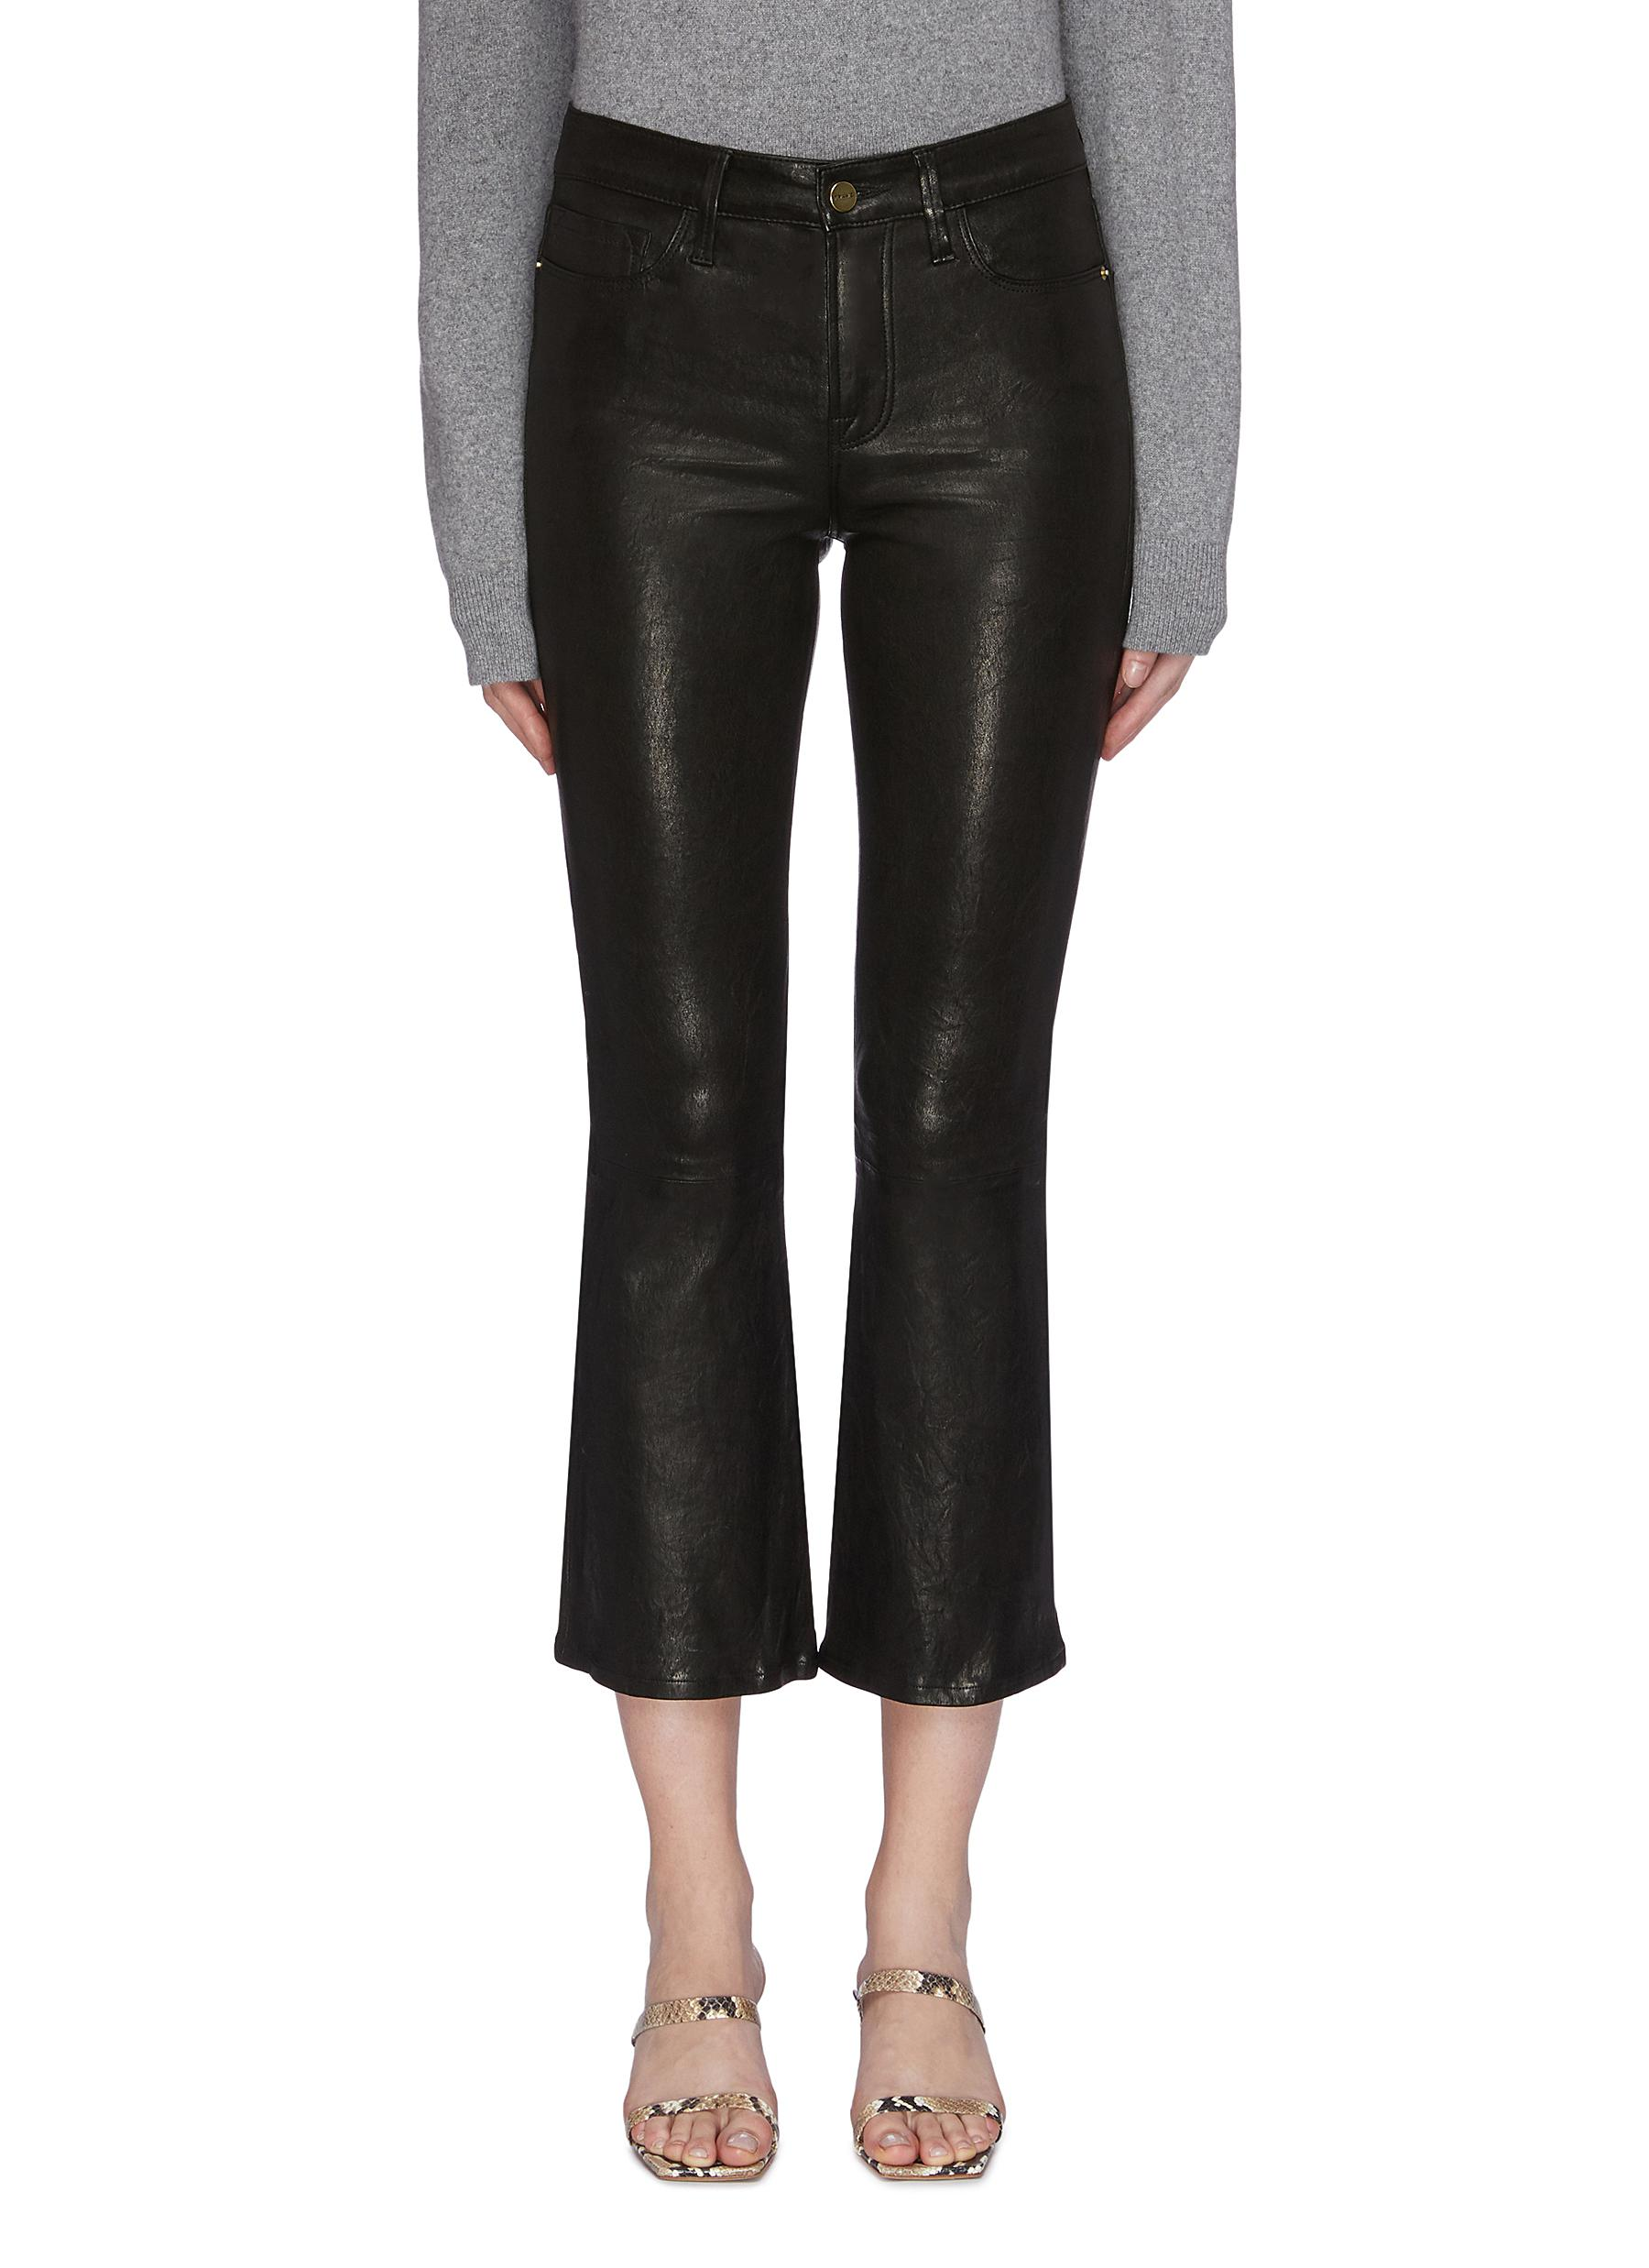 Le Crop flared cropped leather pants by Frame Denim